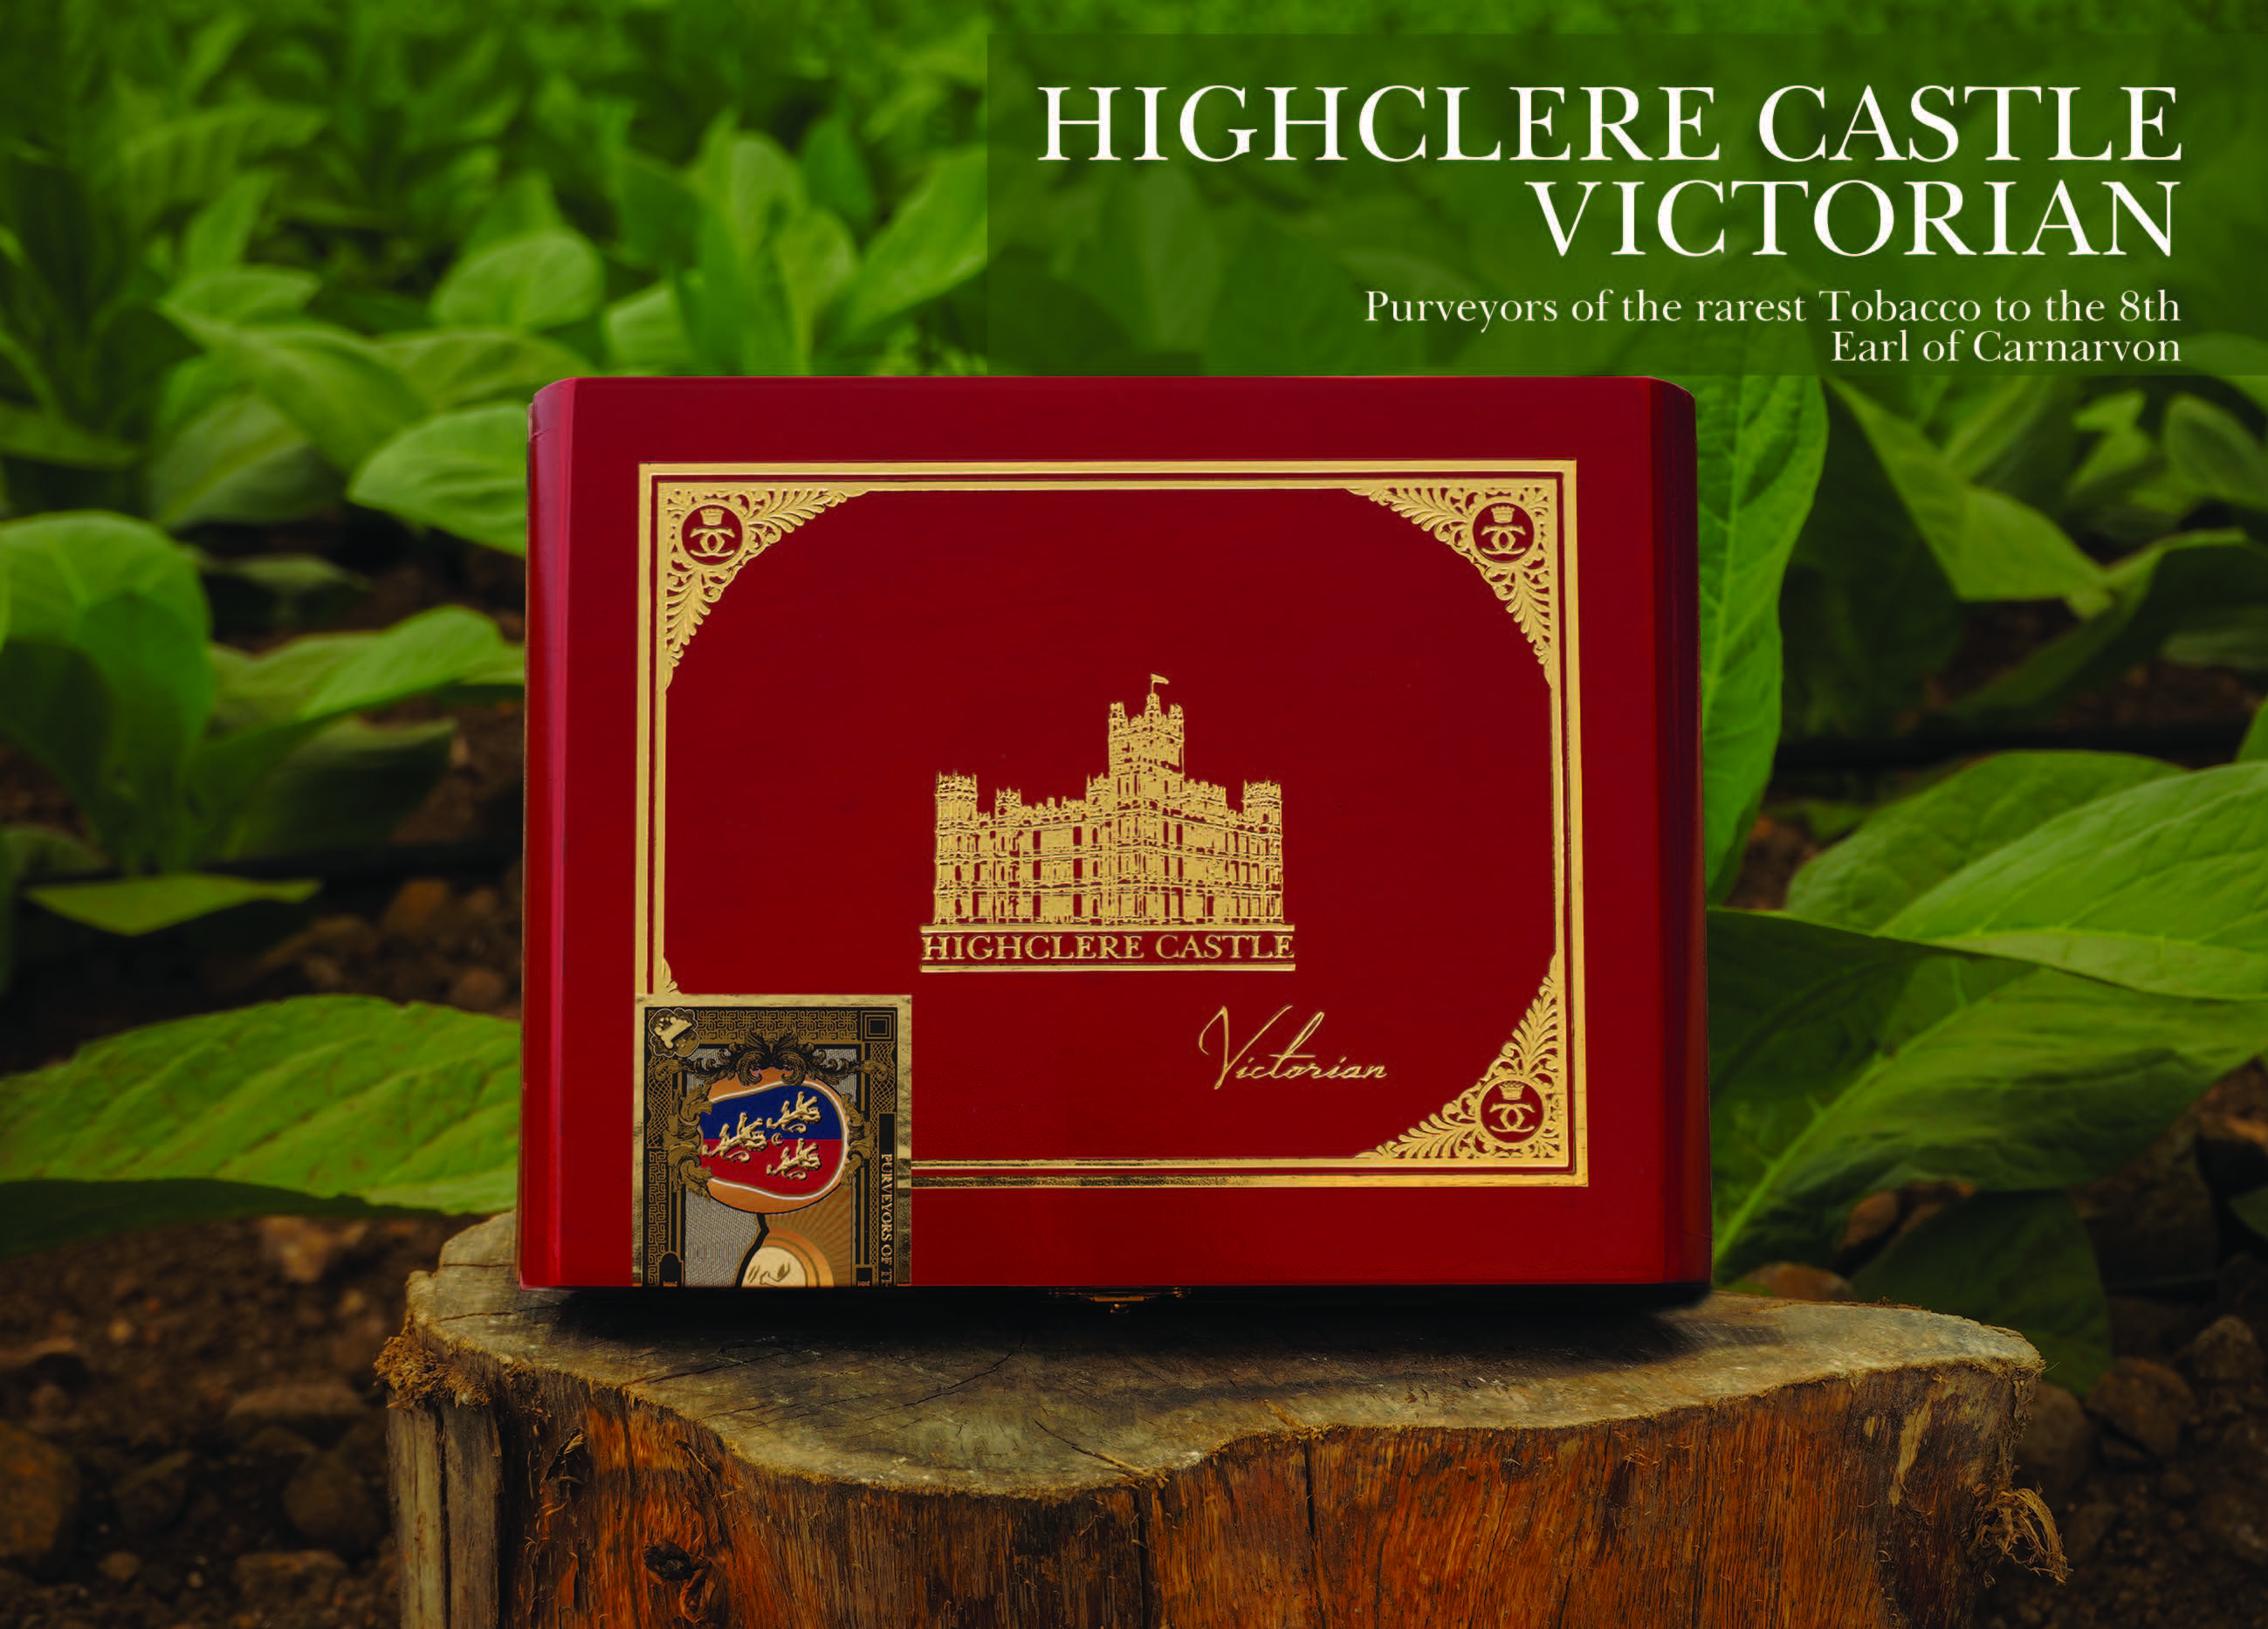 Highclere Castle Habano